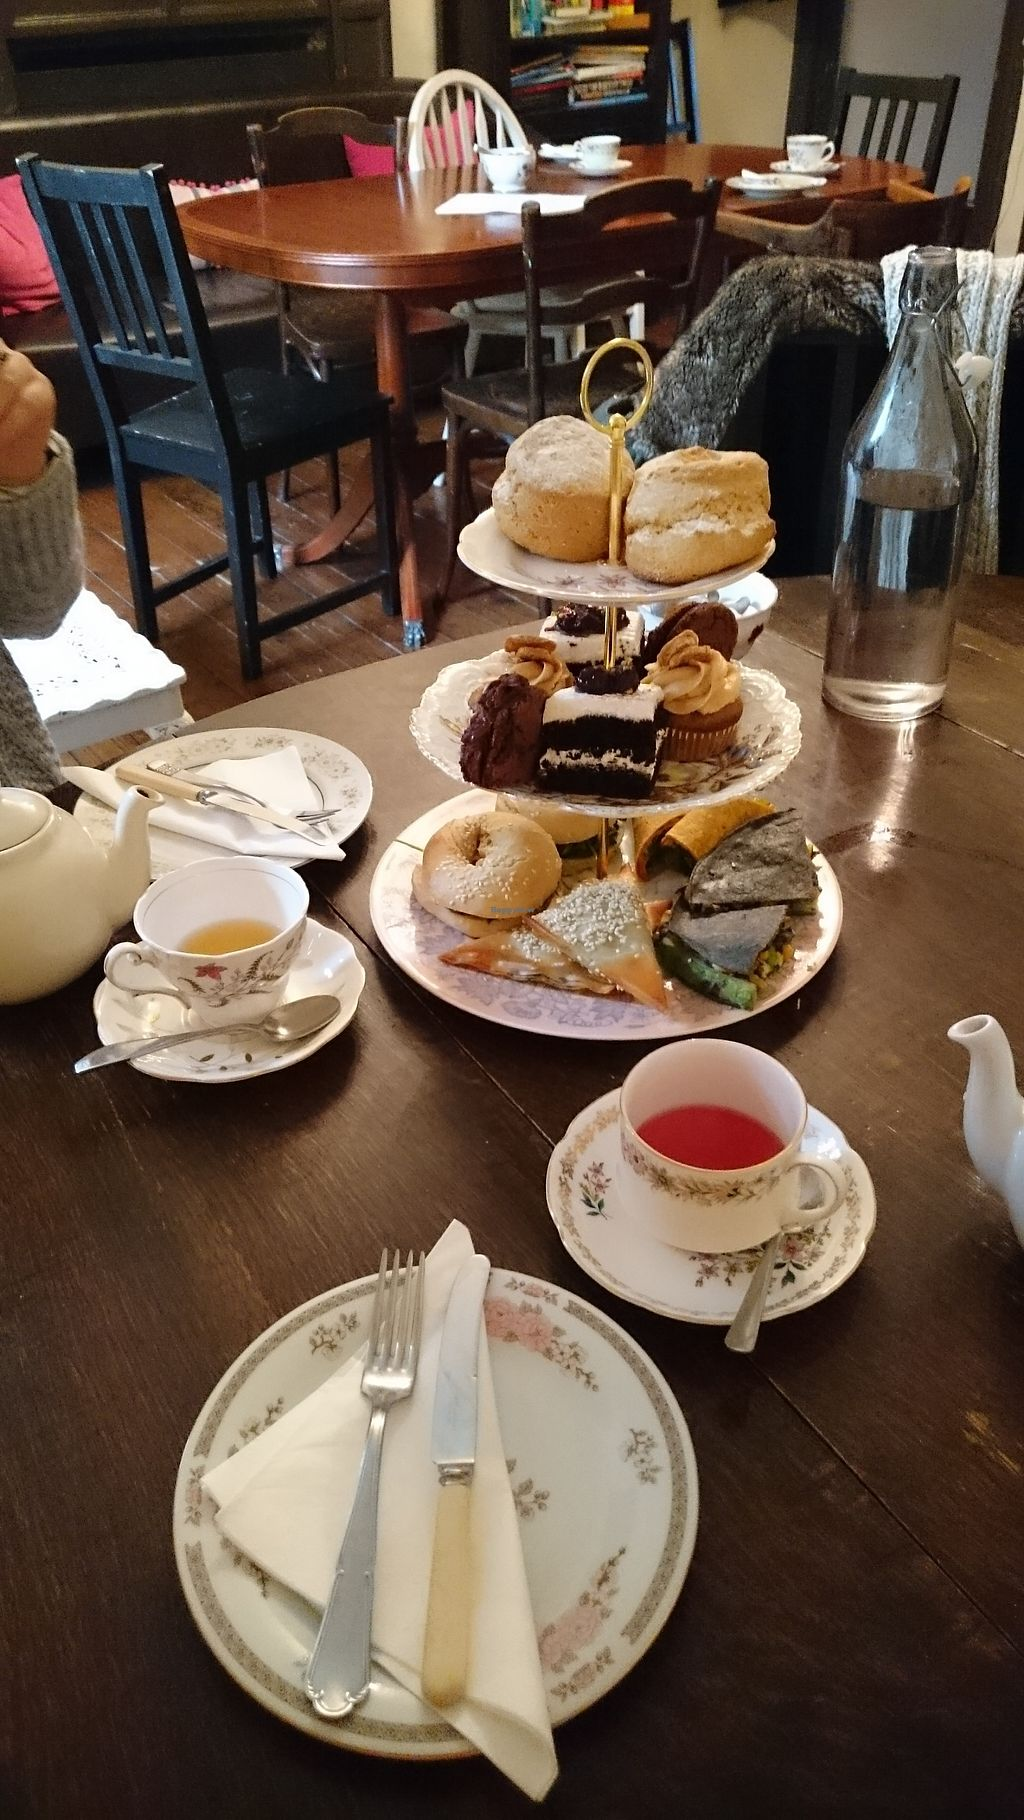 """Photo of Casa Angelina  by <a href=""""/members/profile/Layra"""">Layra</a> <br/>Vegan high tea <br/> October 24, 2017  - <a href='/contact/abuse/image/66565/318256'>Report</a>"""